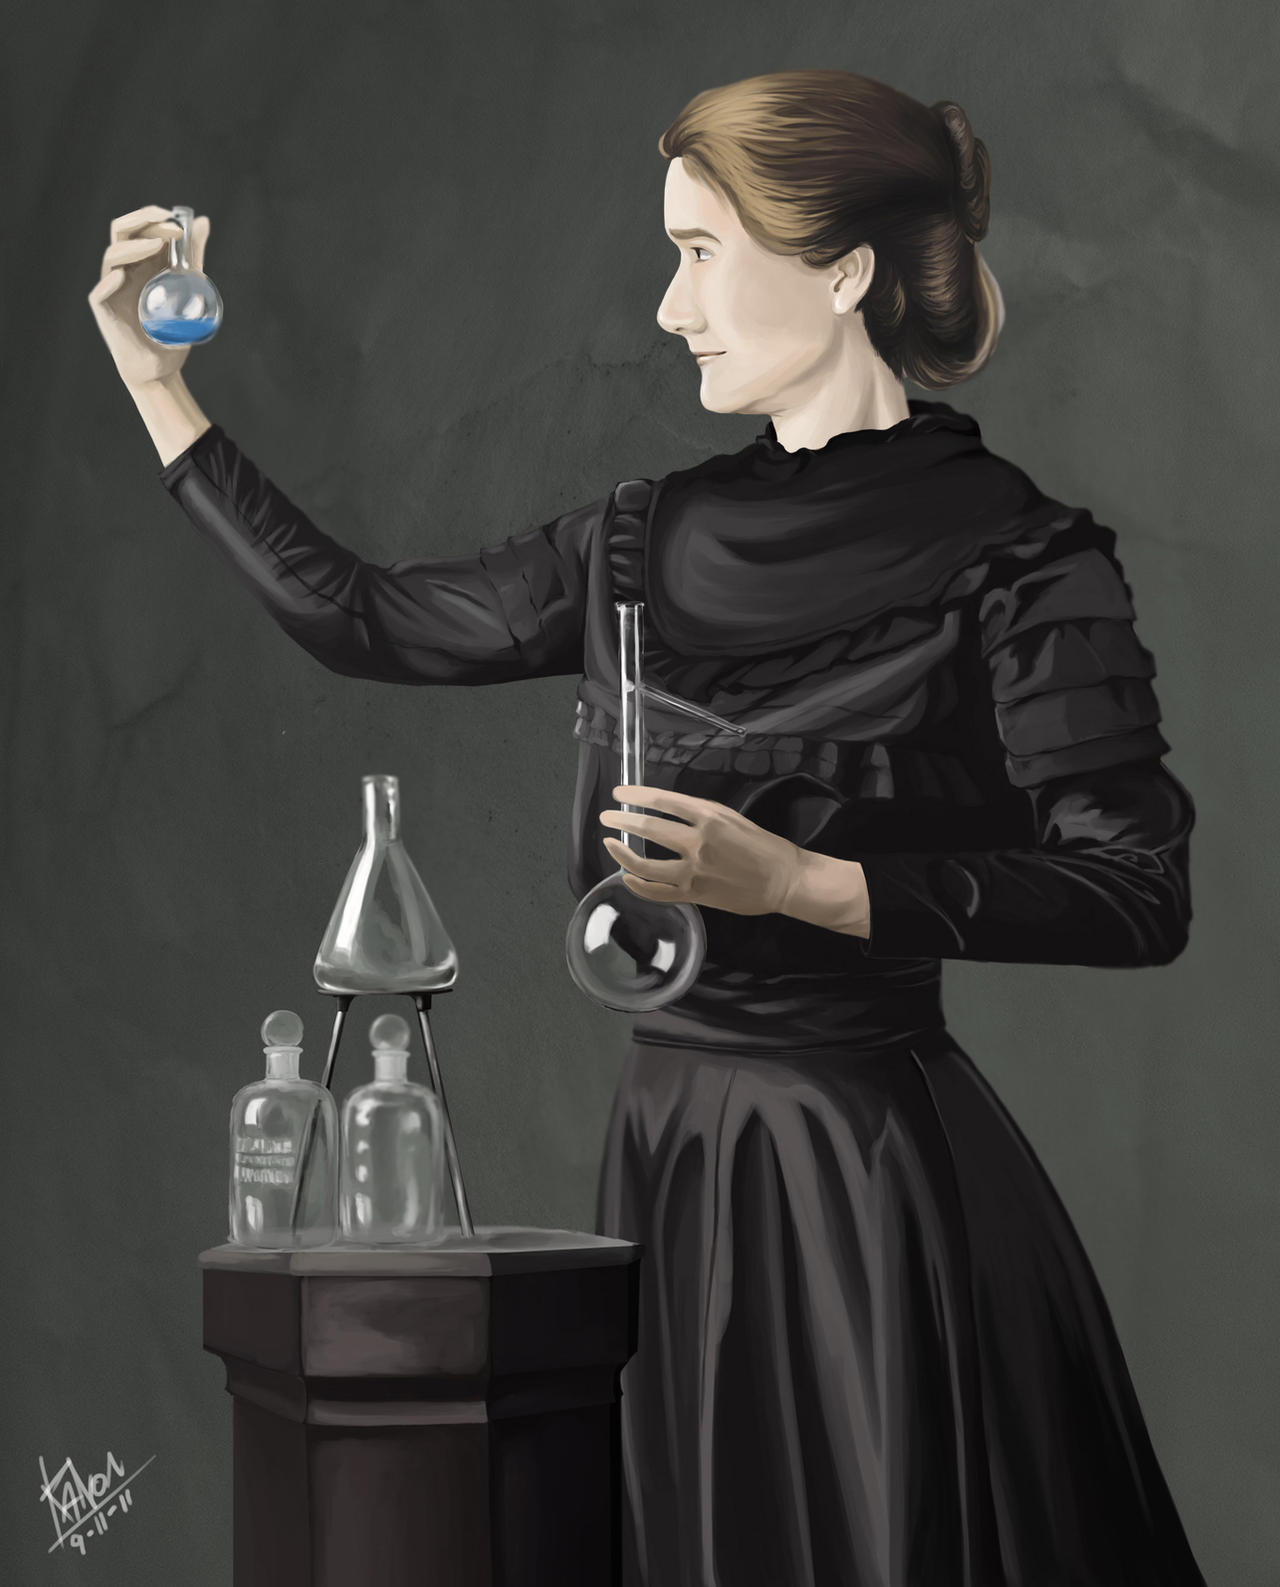 Marie curie in color